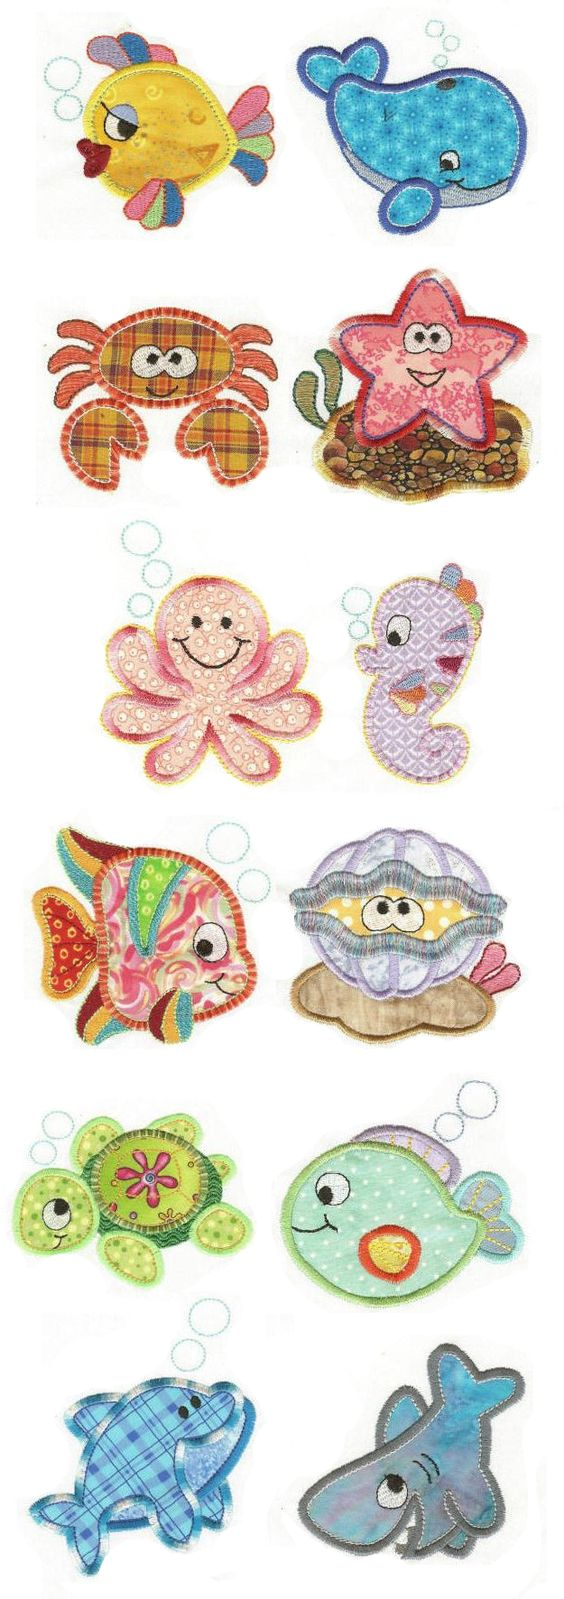 Critters of the Sea Applique design set available for instant download at www.designsbyjuju.com